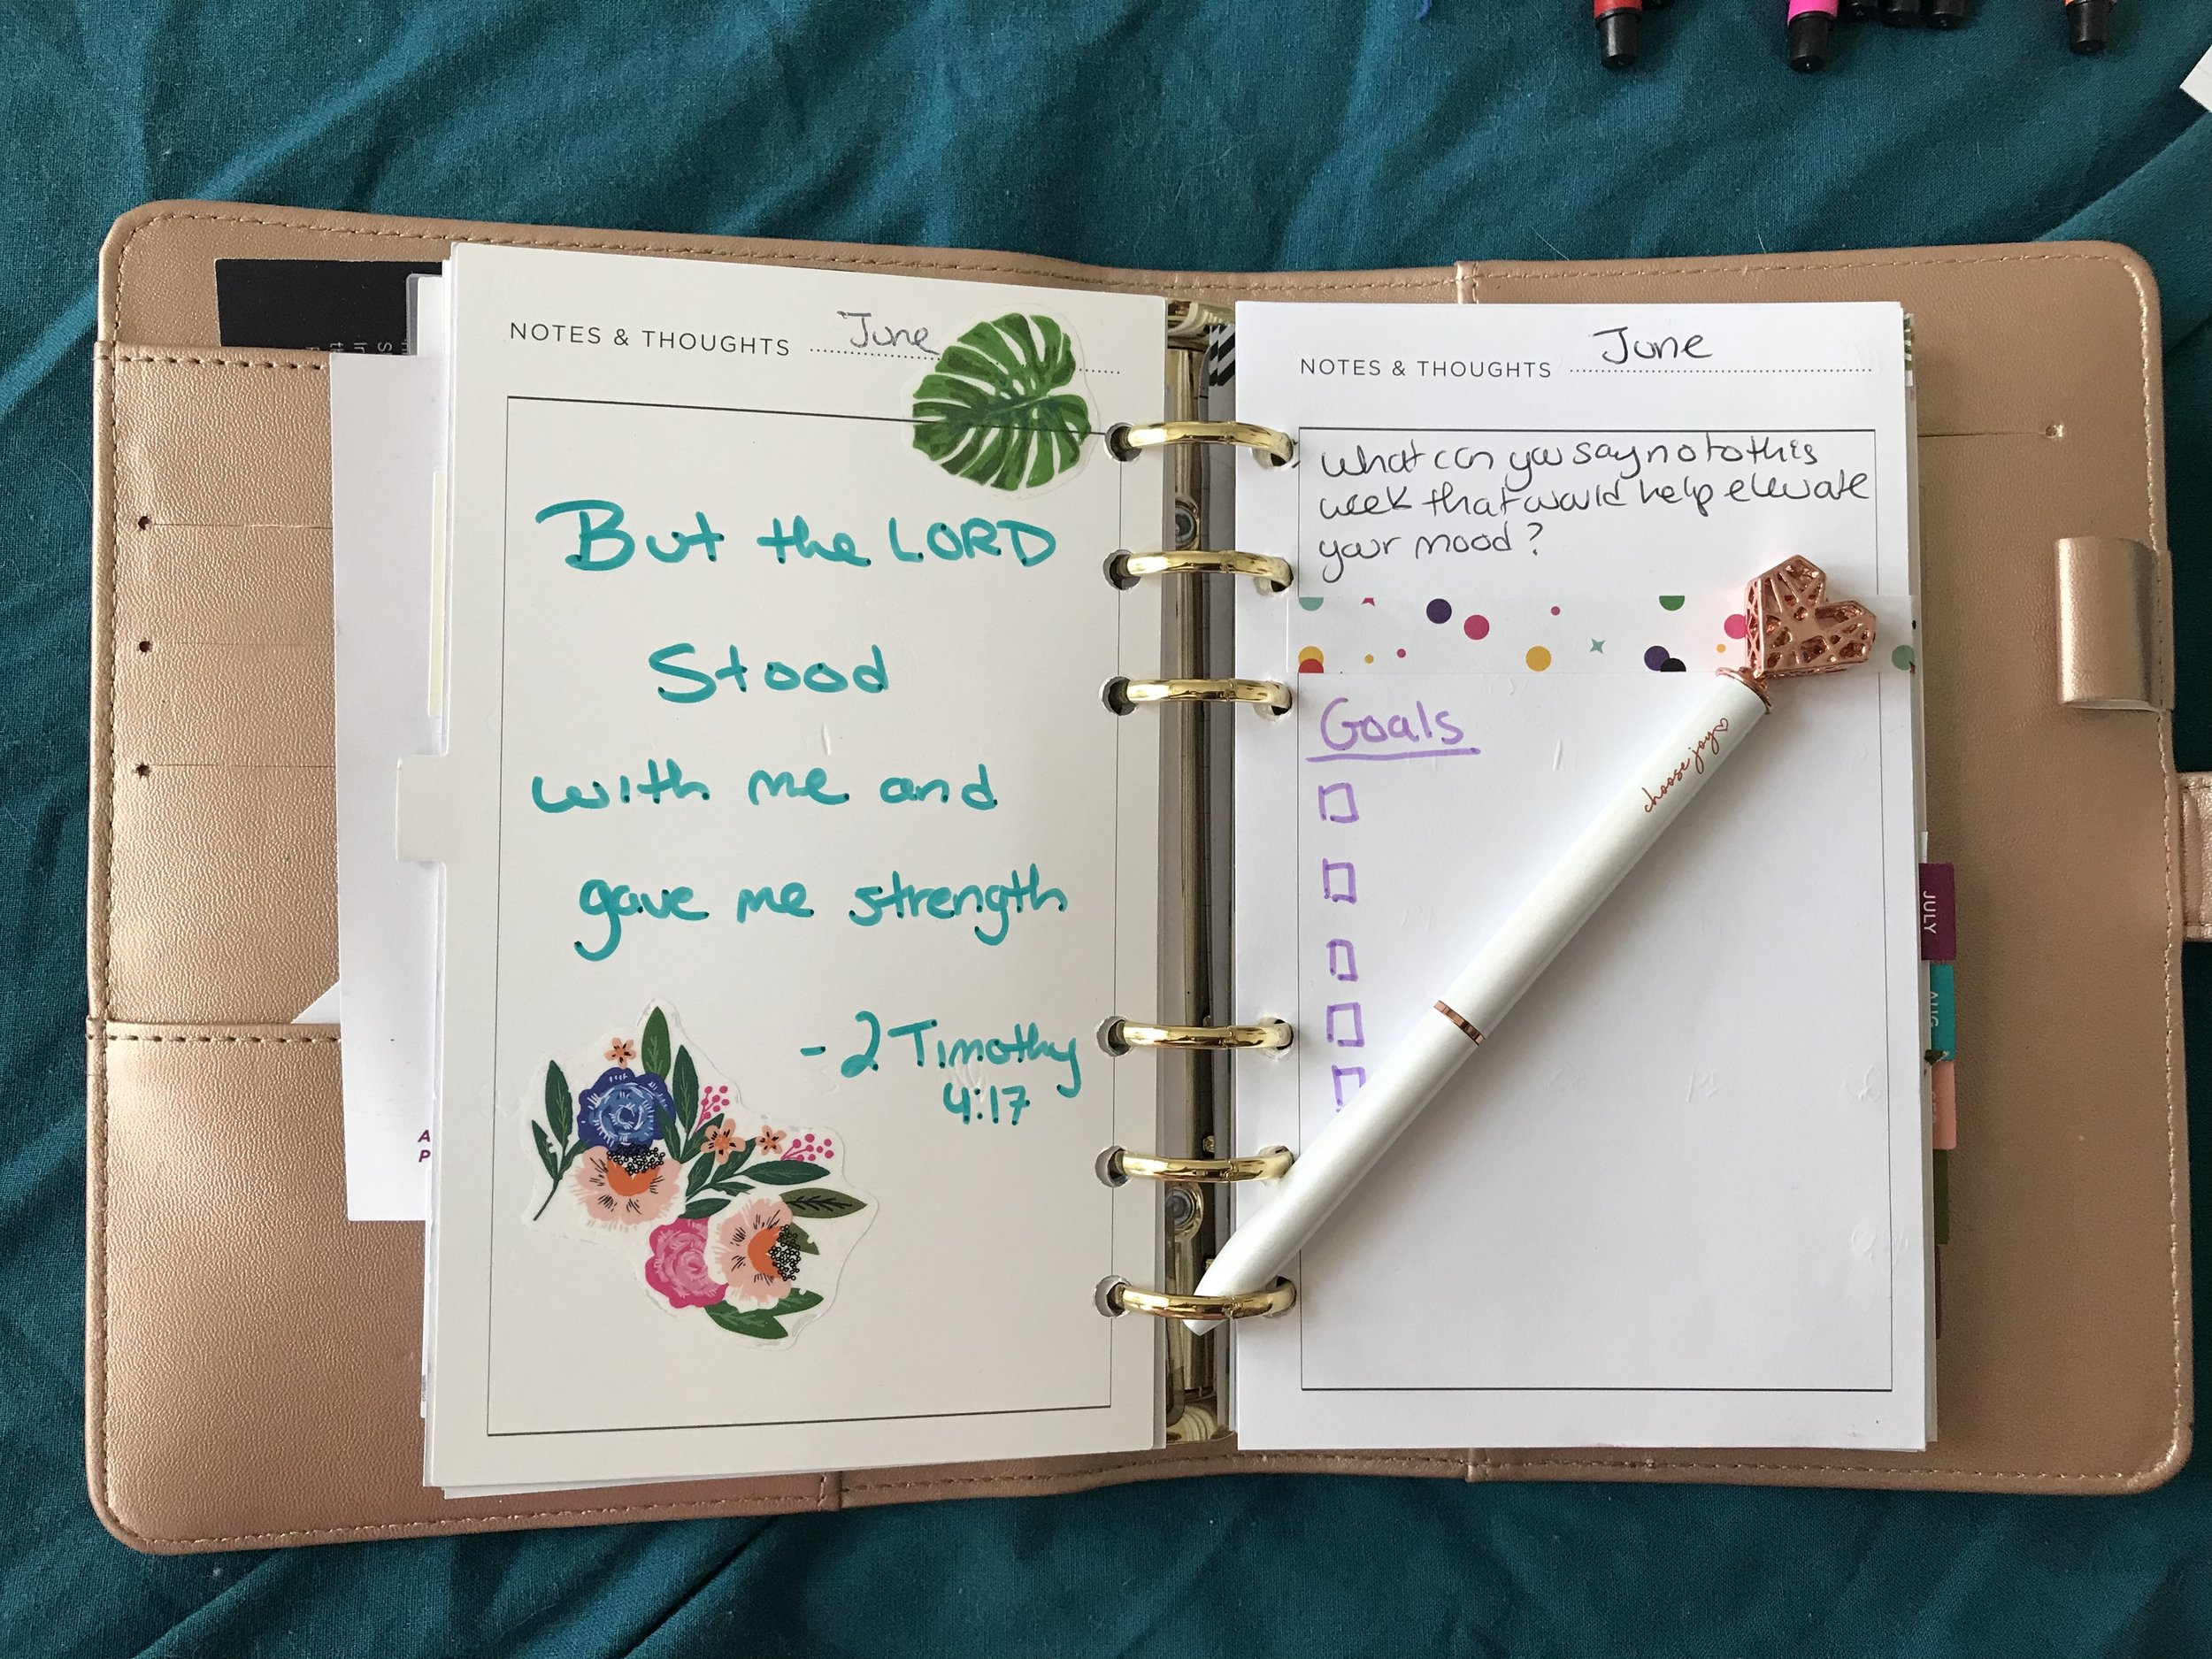 Each month I jot down : a bible scripture, one self care activity, and a list of goals